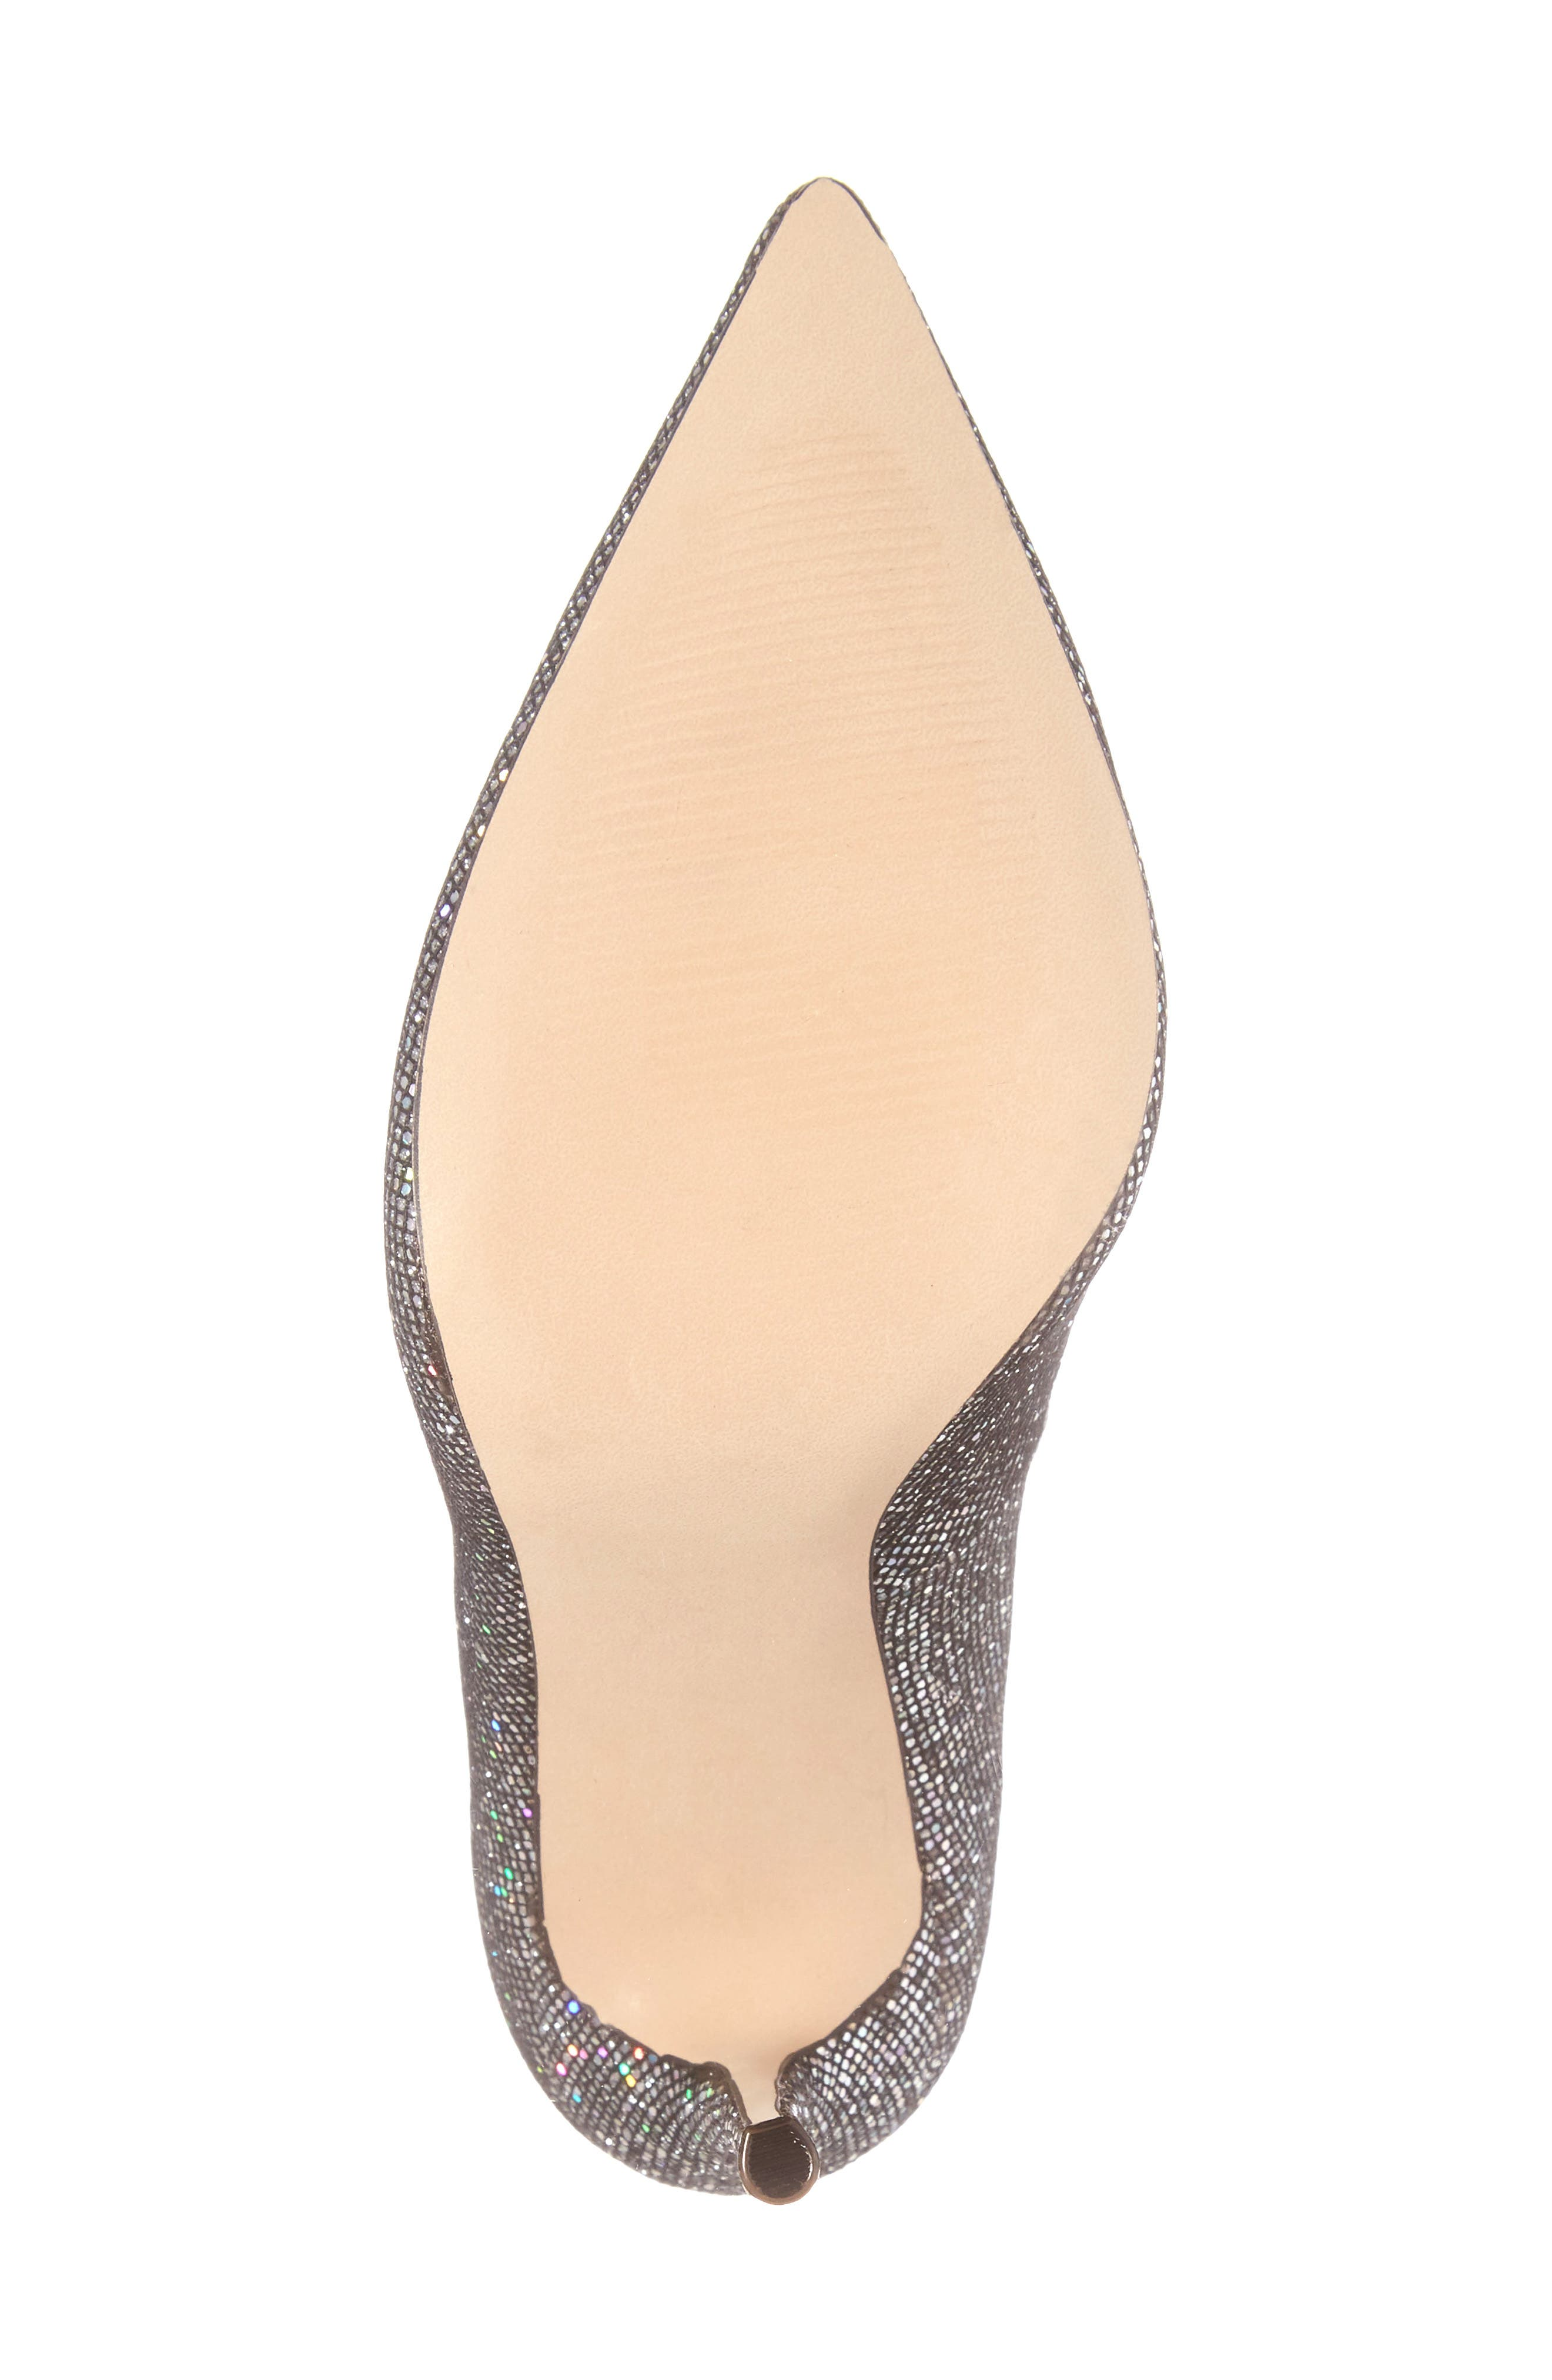 Daisie Pointy-Toe Pump,                             Alternate thumbnail 6, color,                             Black Multi Glitter